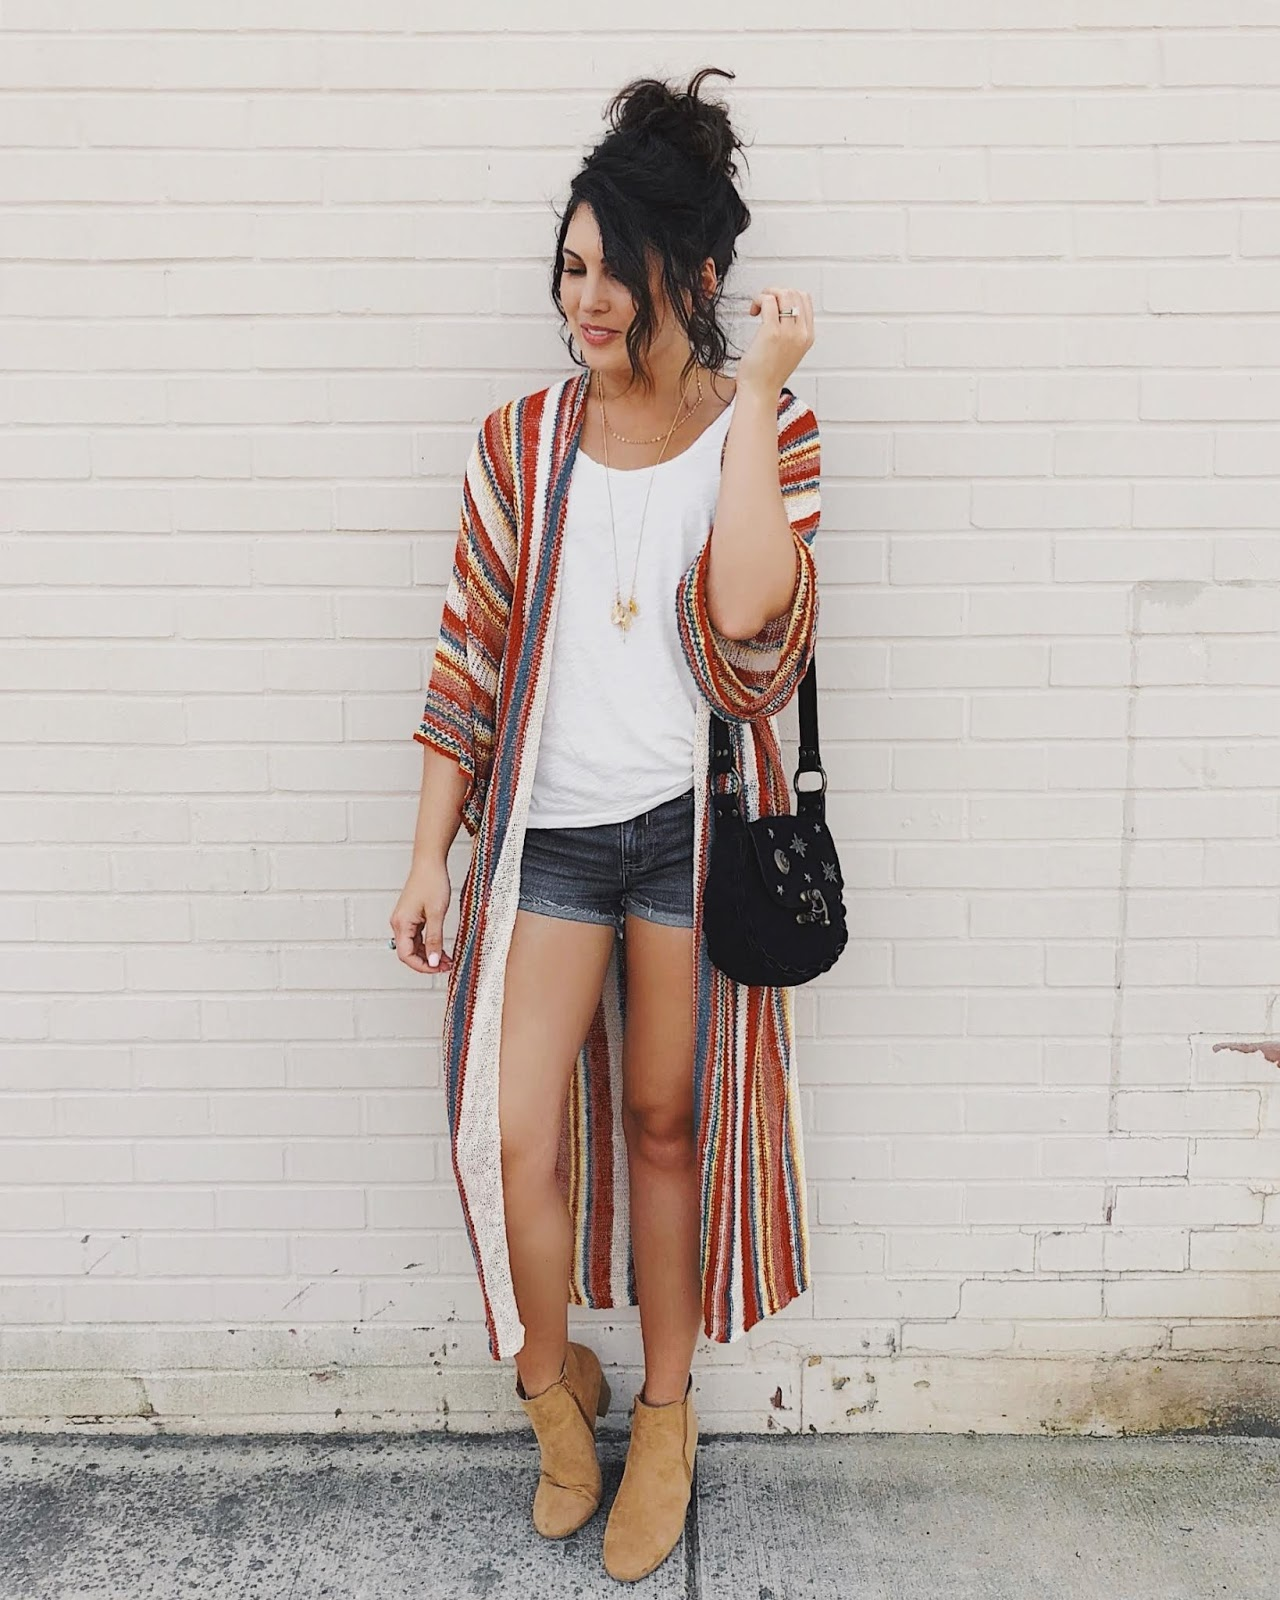 boho style, crochet sweater kimono, forever 21 striped knit sweater, xo samantha brooke, life and messy hair, samantha brooke, boho fashion, nc blogger, nc blog, nc lifestyle blogger